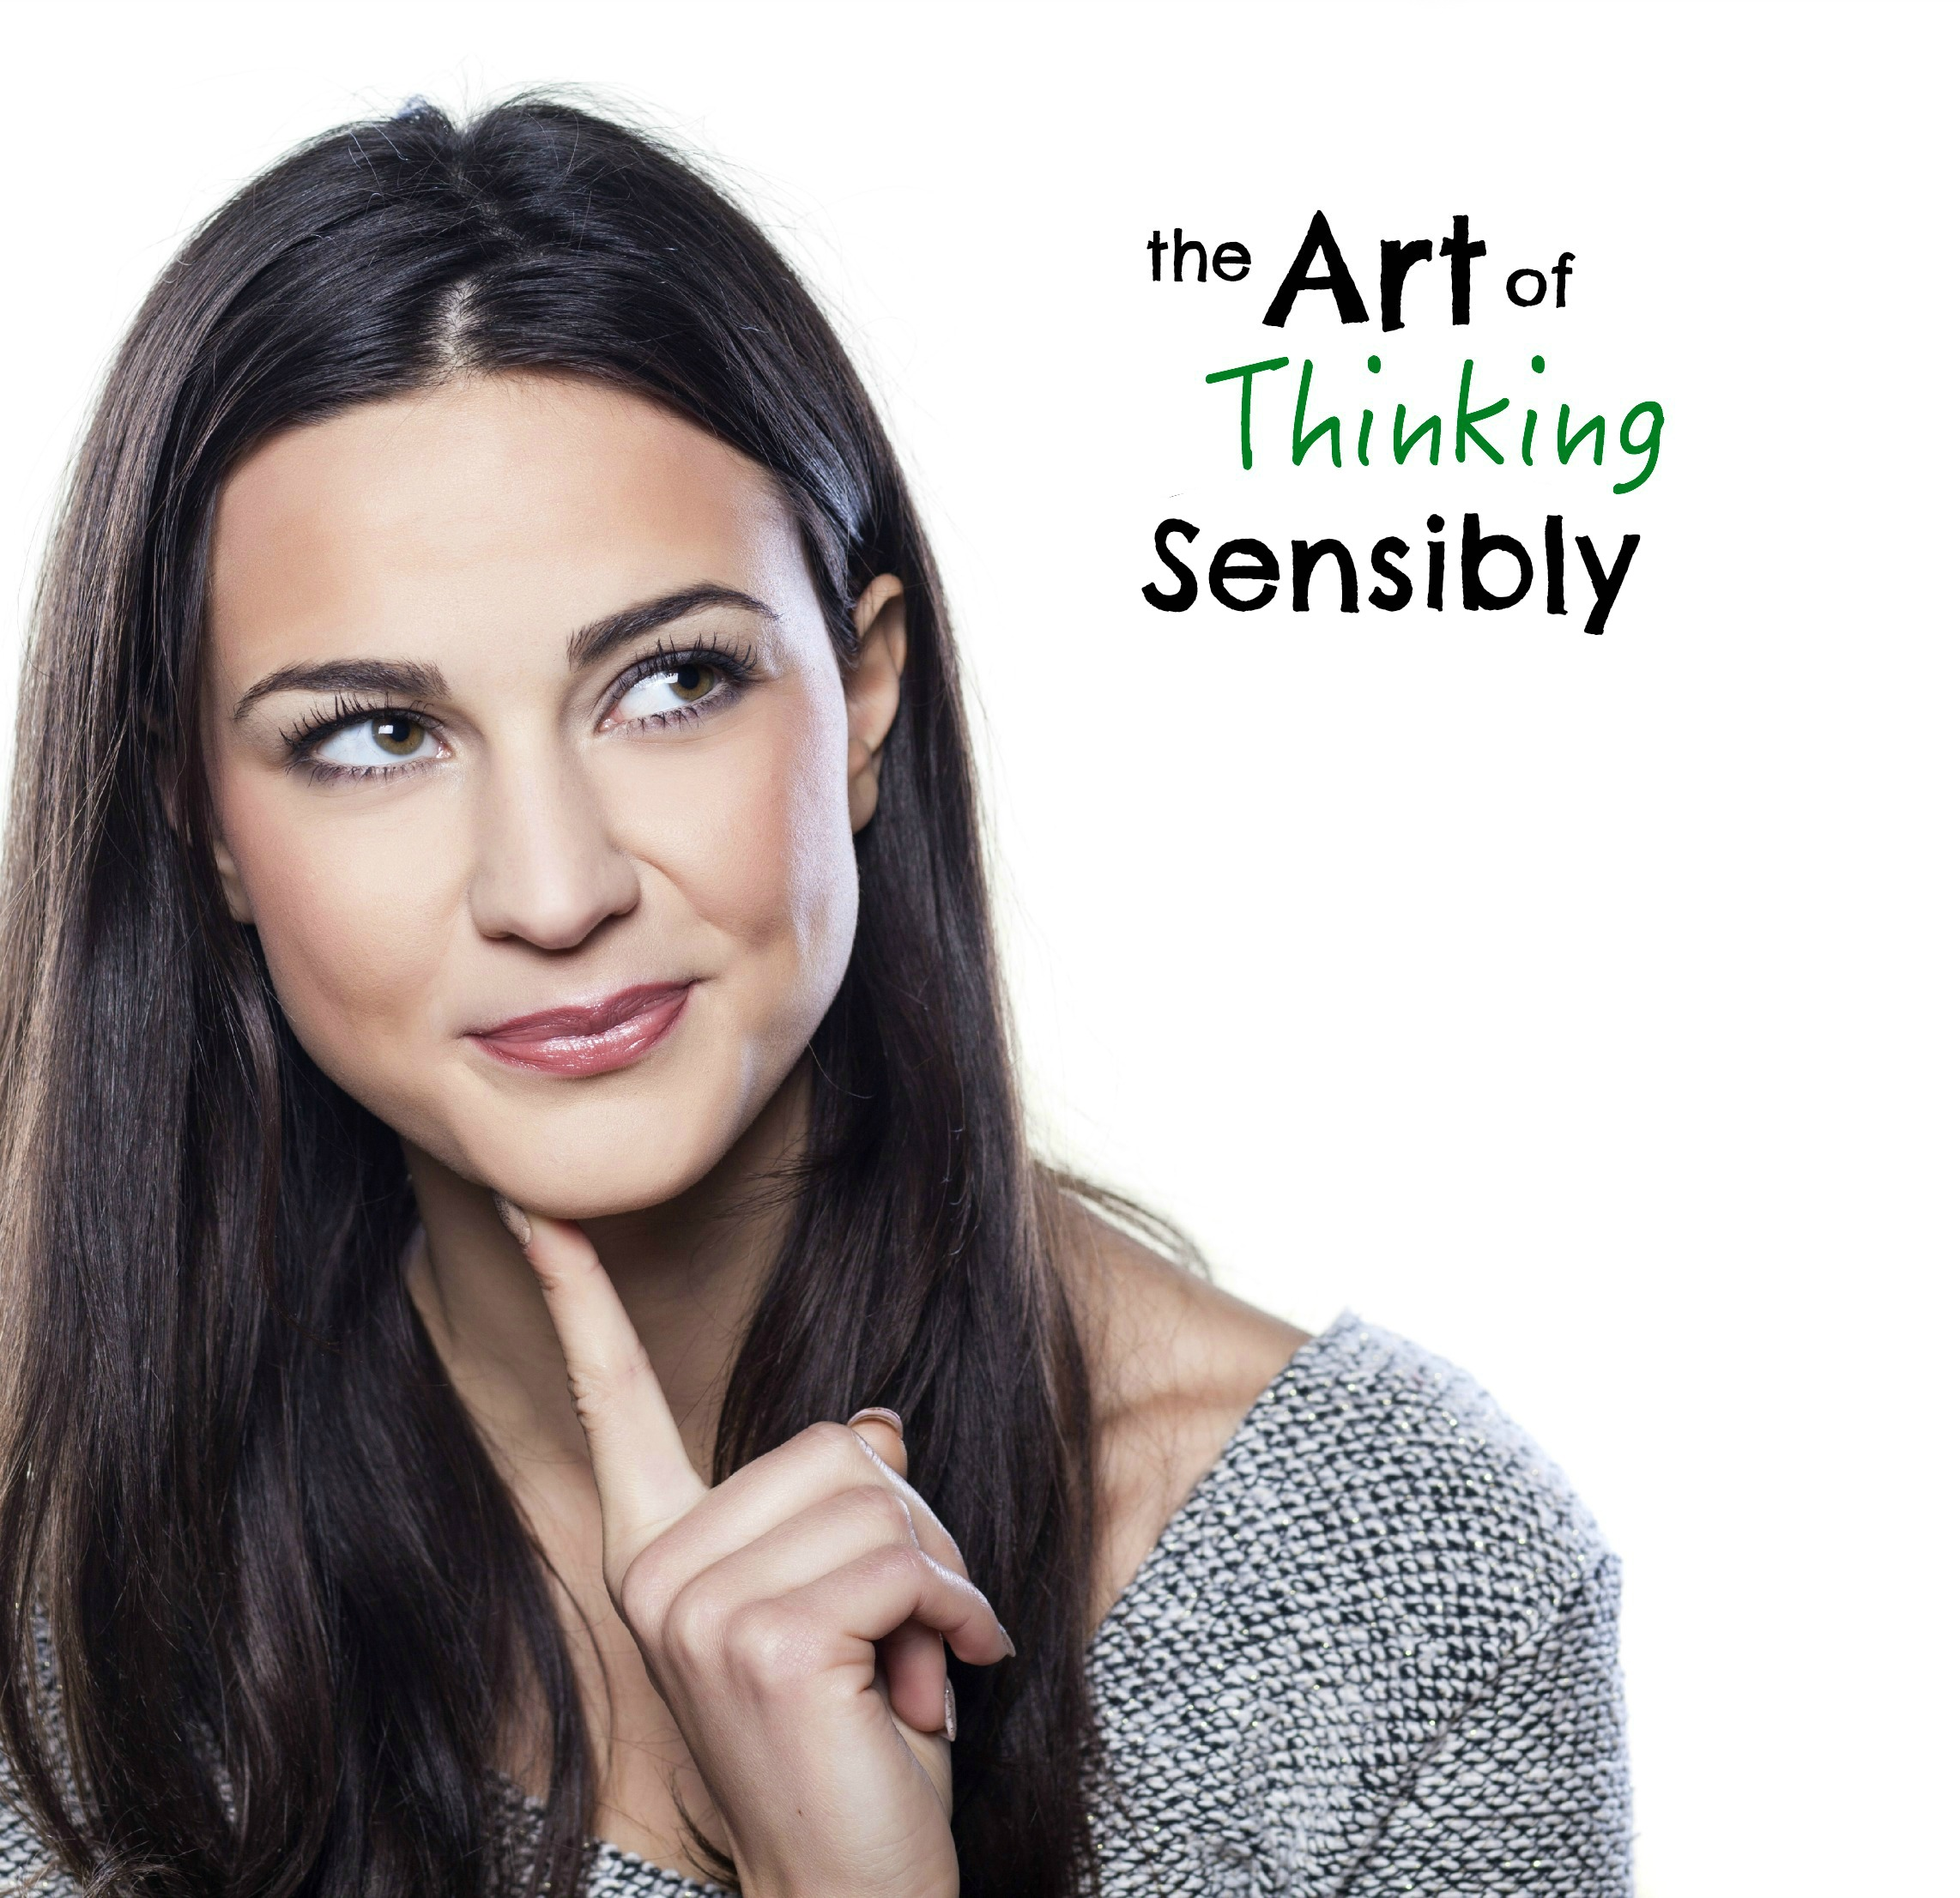 The Art of Thinking Sensibly